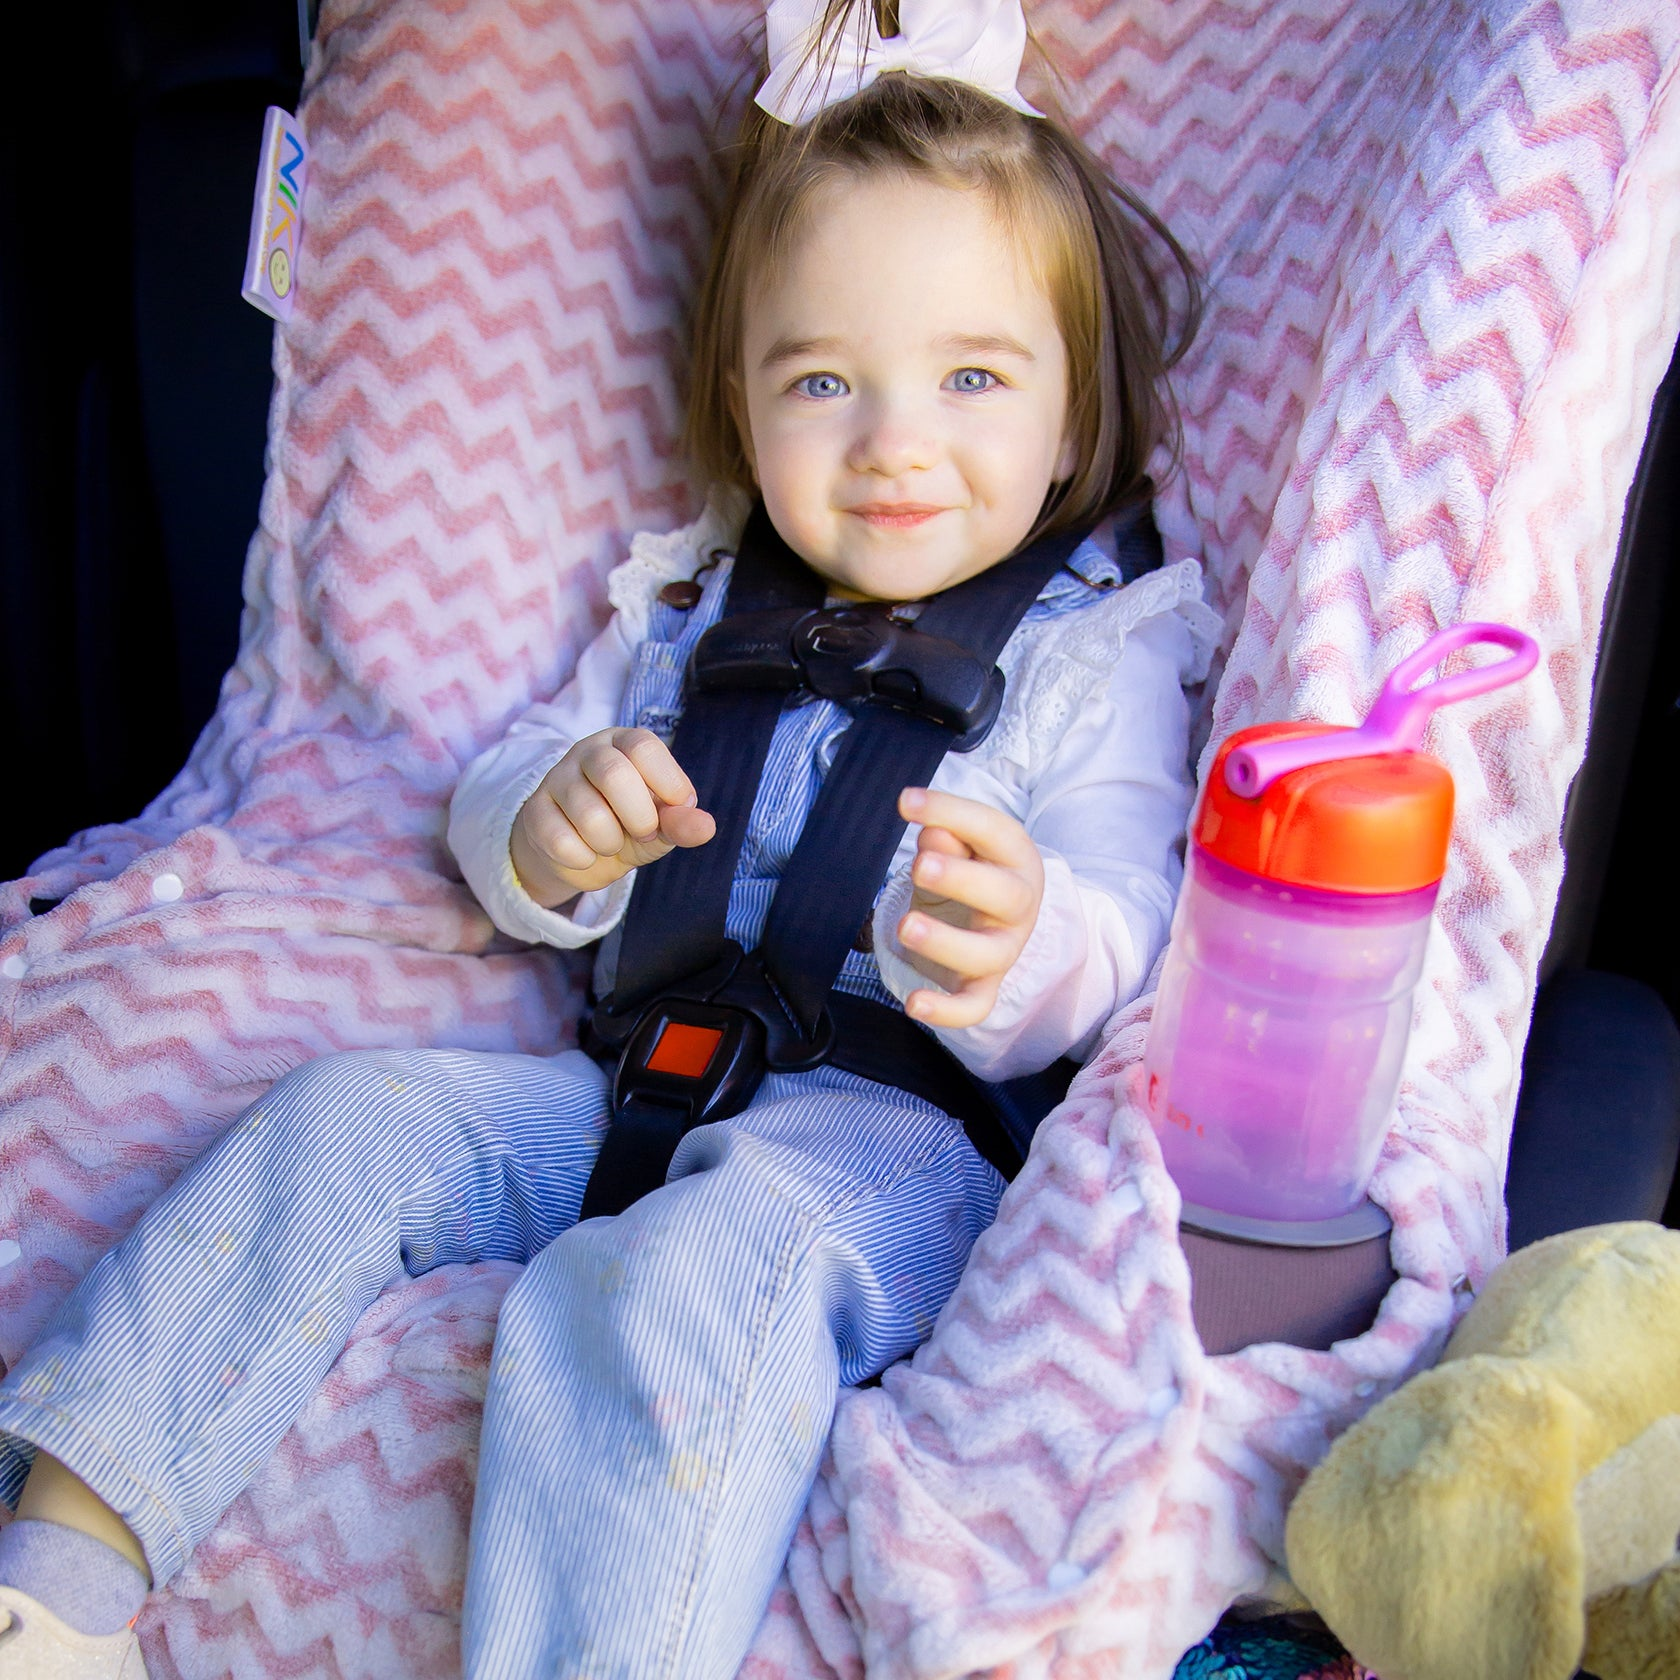 Niko Easy Wash Children's Car Seat Cover & Liner - Minky - Pink Chevron